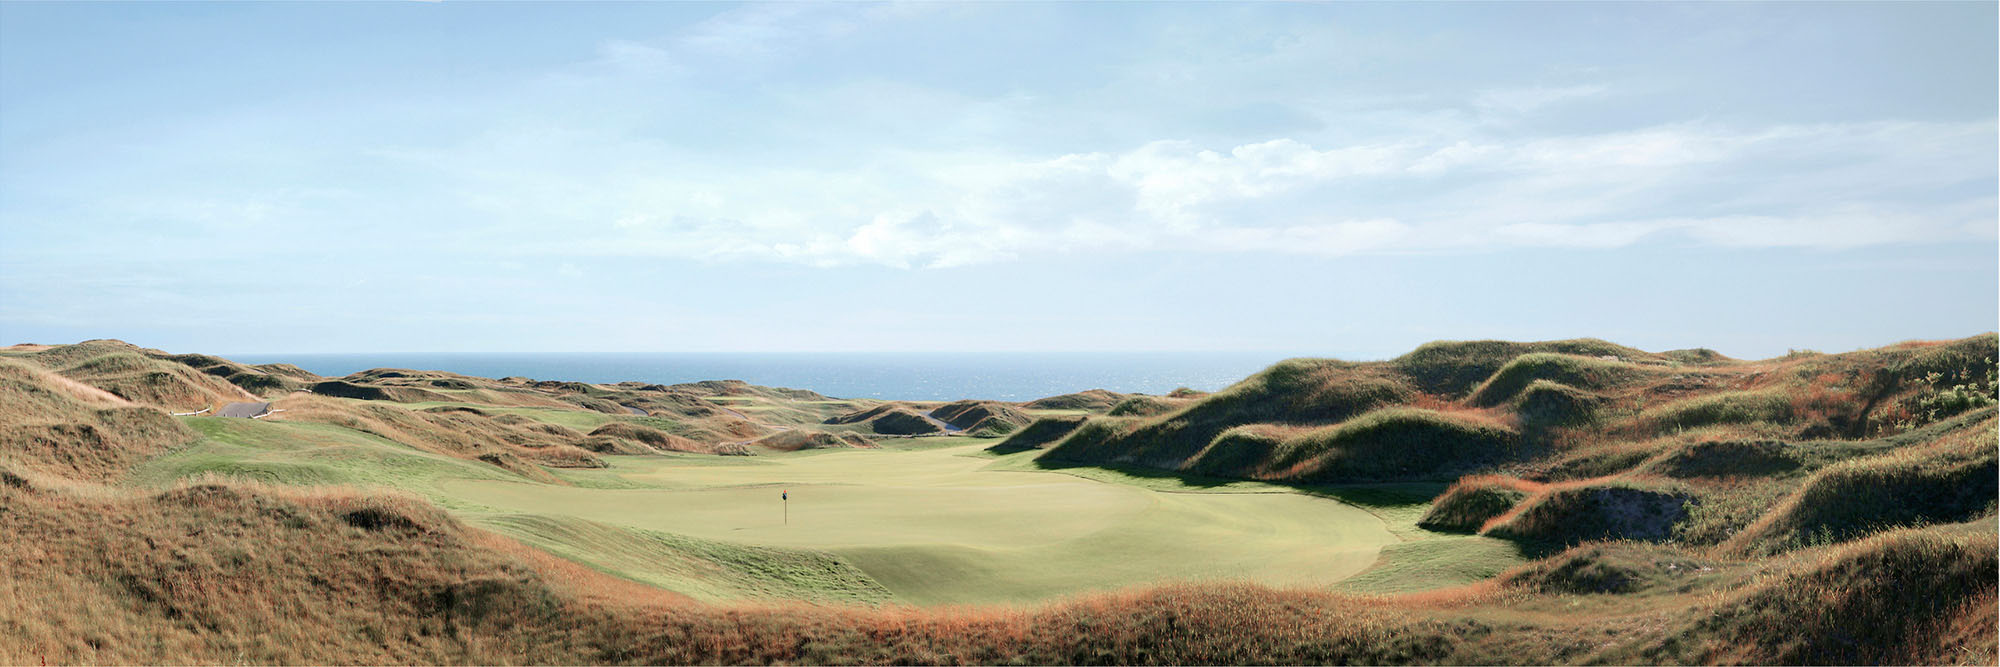 Golf Course Image - Arcadia Bluffs No. 14